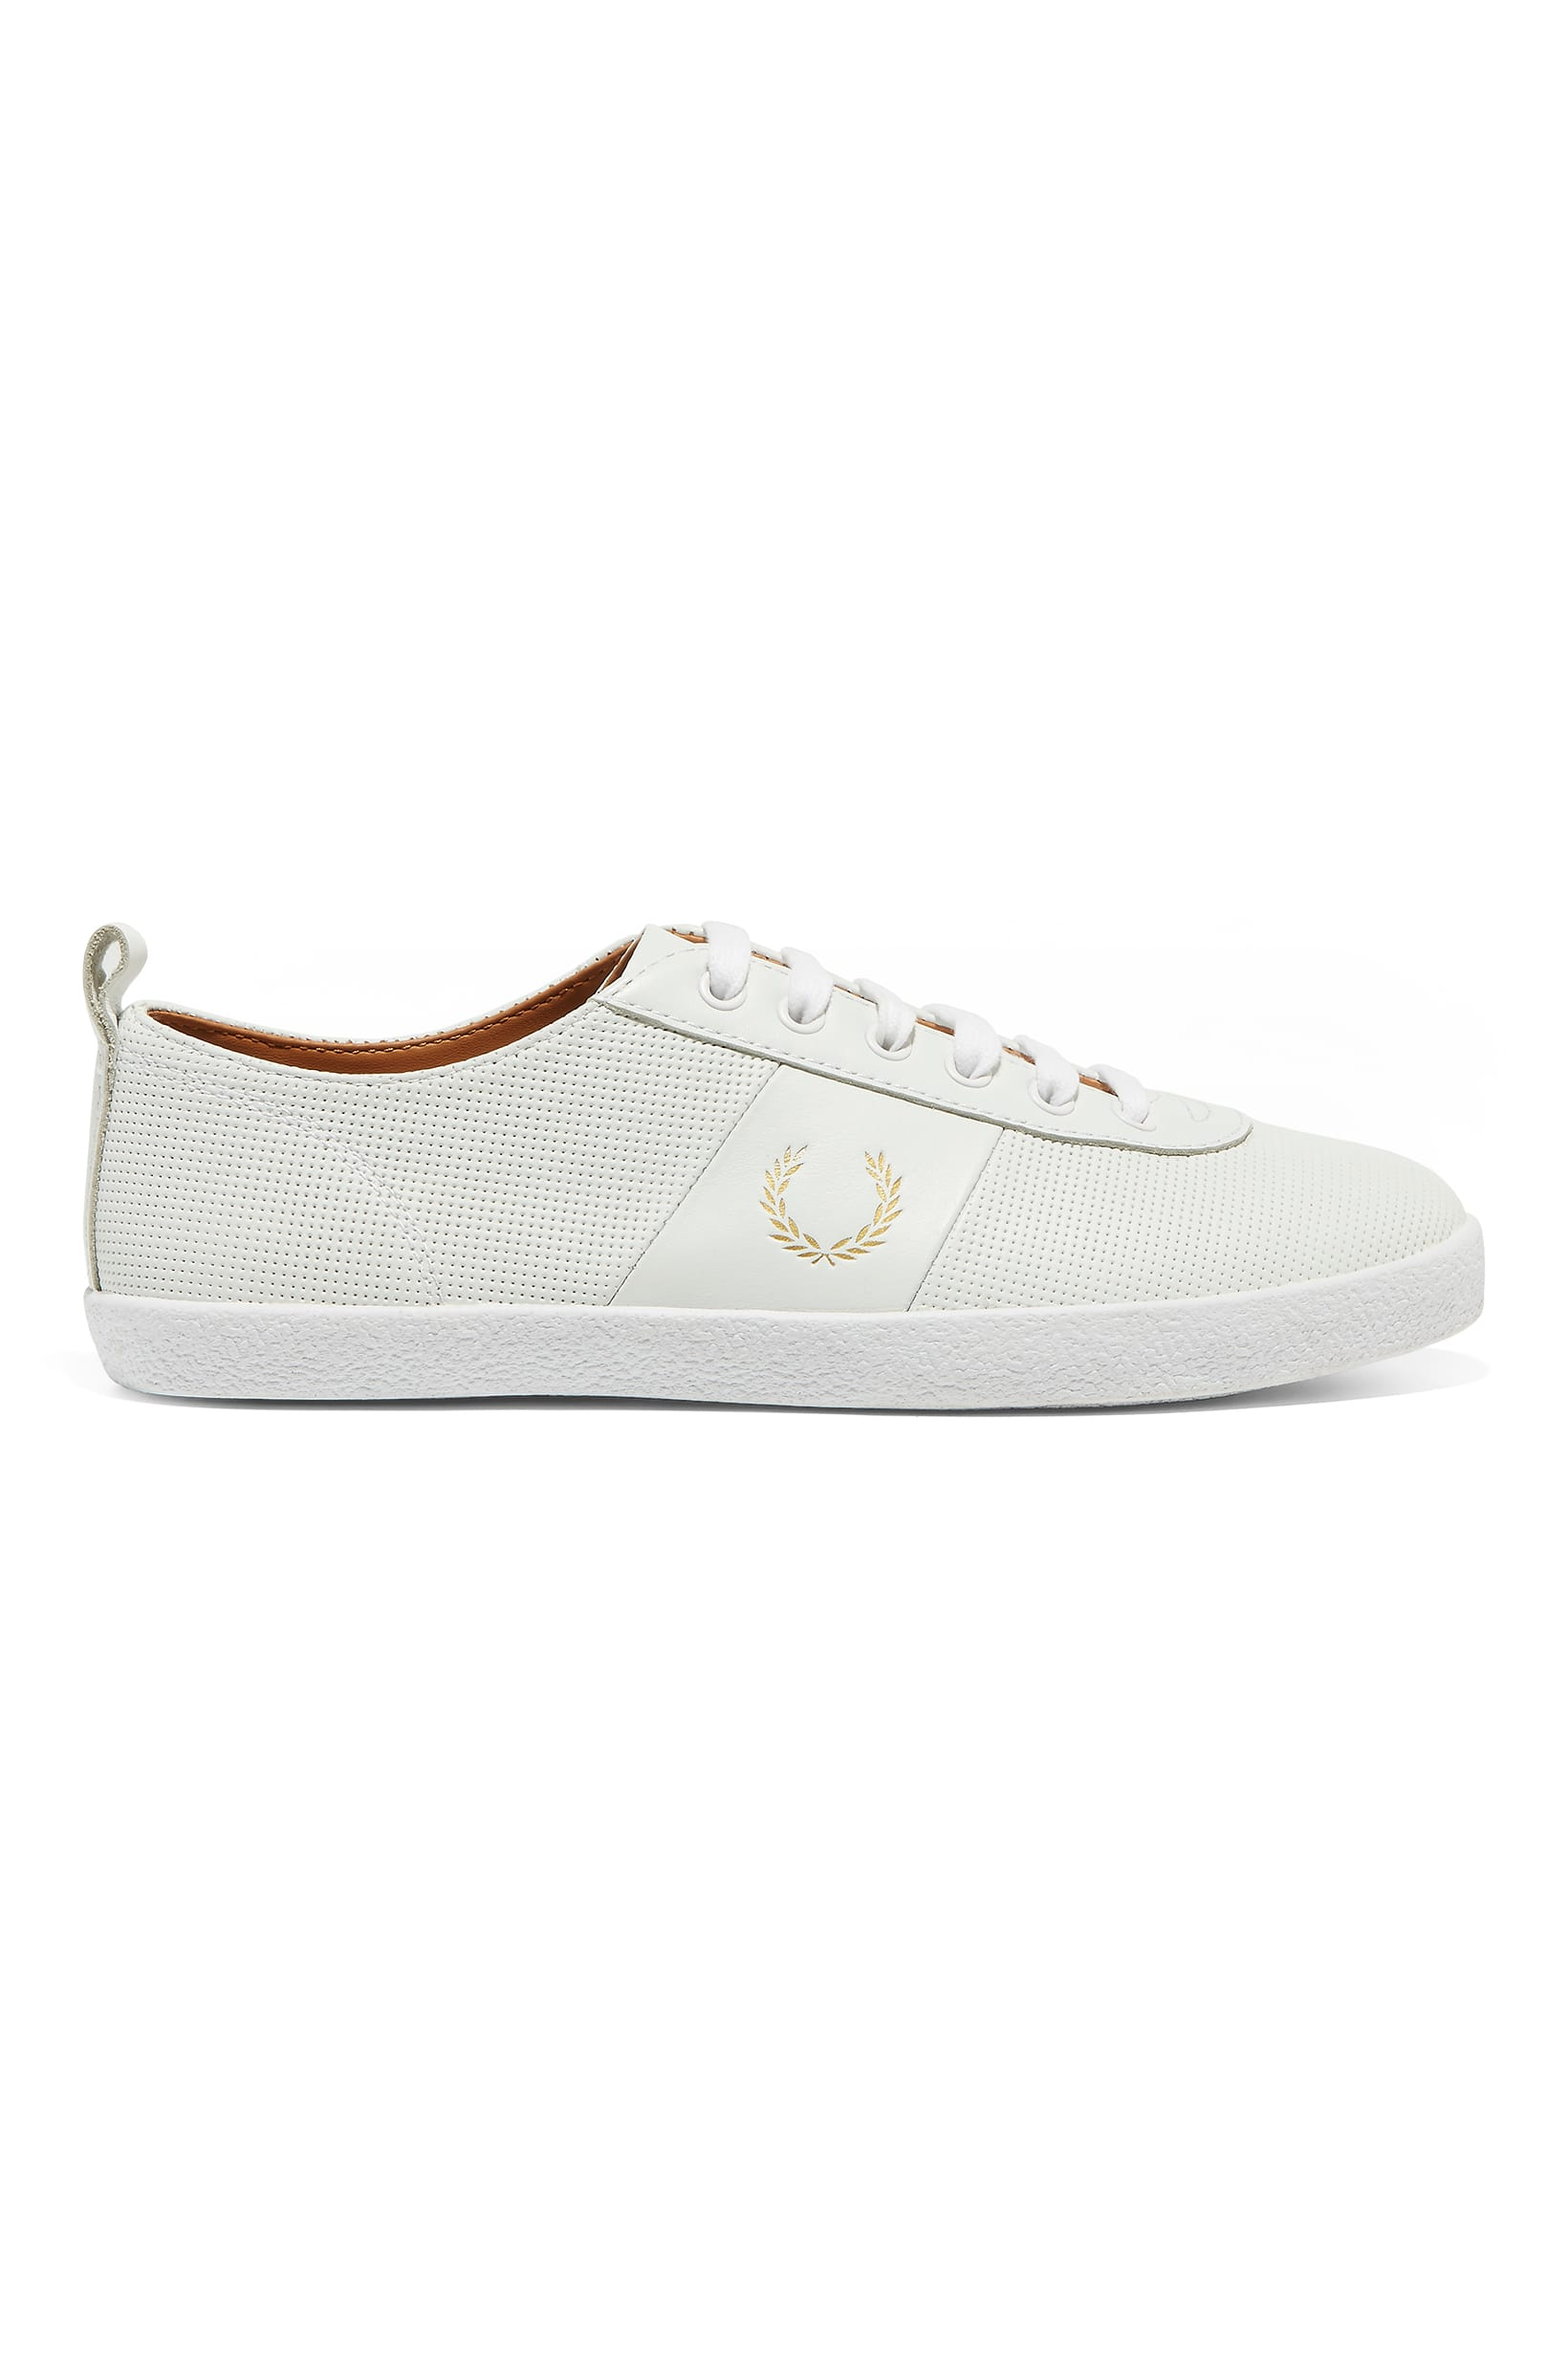 fredperrymiles6